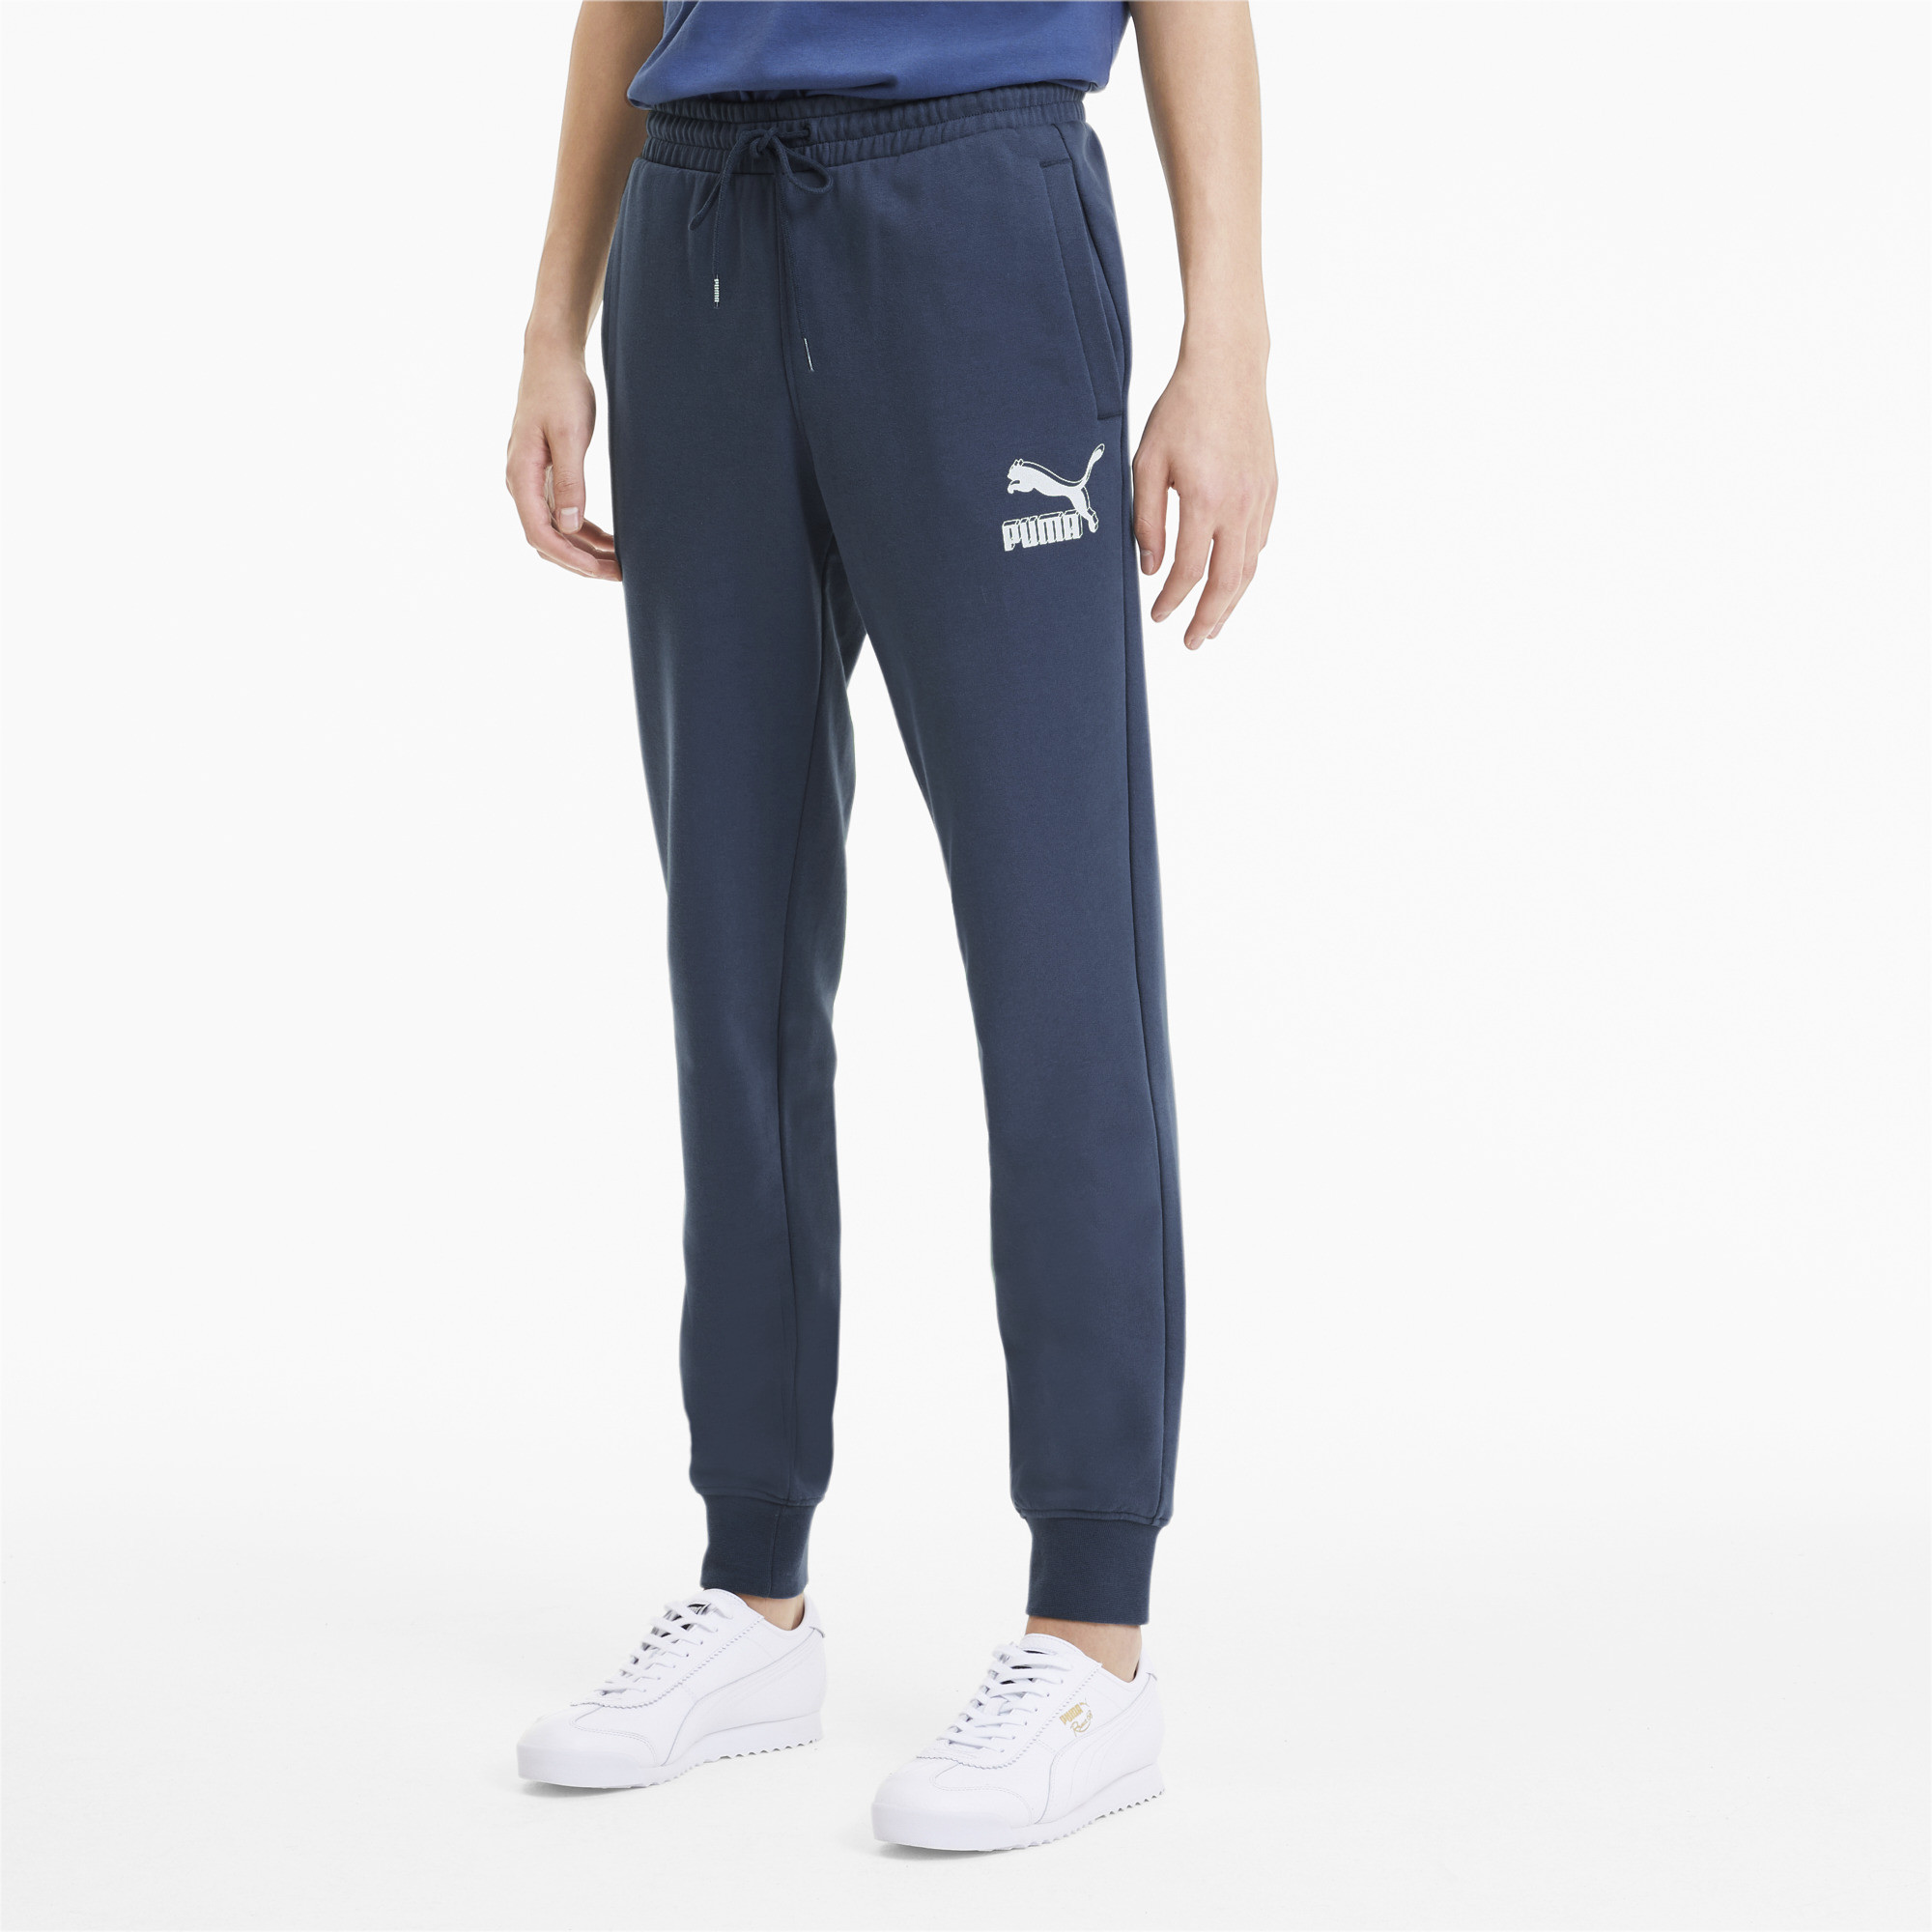 PUMA-Classics-Men-039-s-Cuffed-Sweatpants-Men-Knitted-Pants-Sport-Classics thumbnail 14